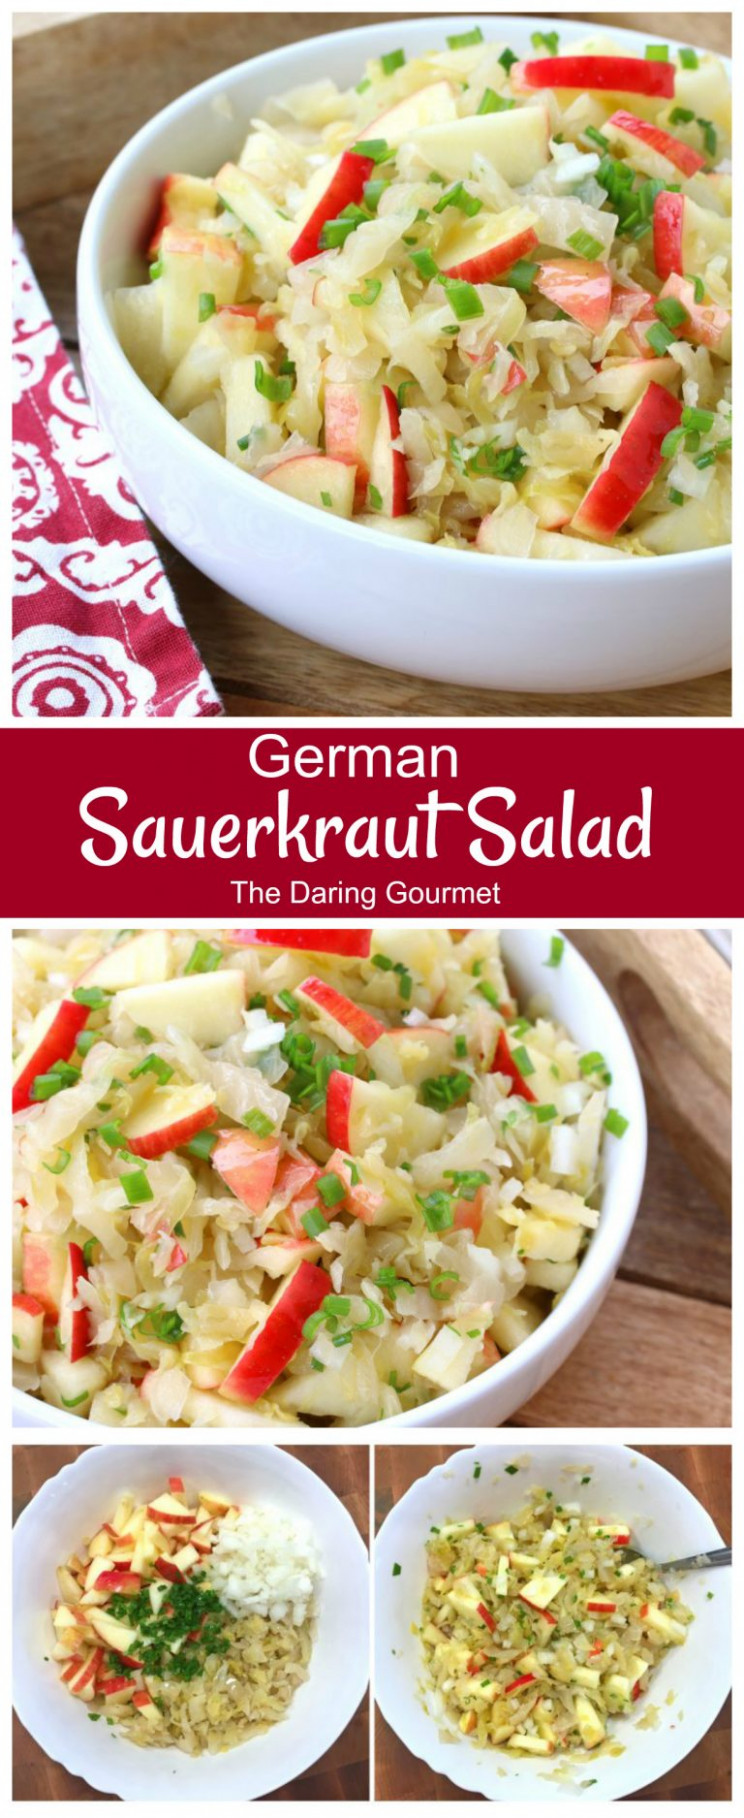 Sauerkraut Salad - The Daring Gourmet